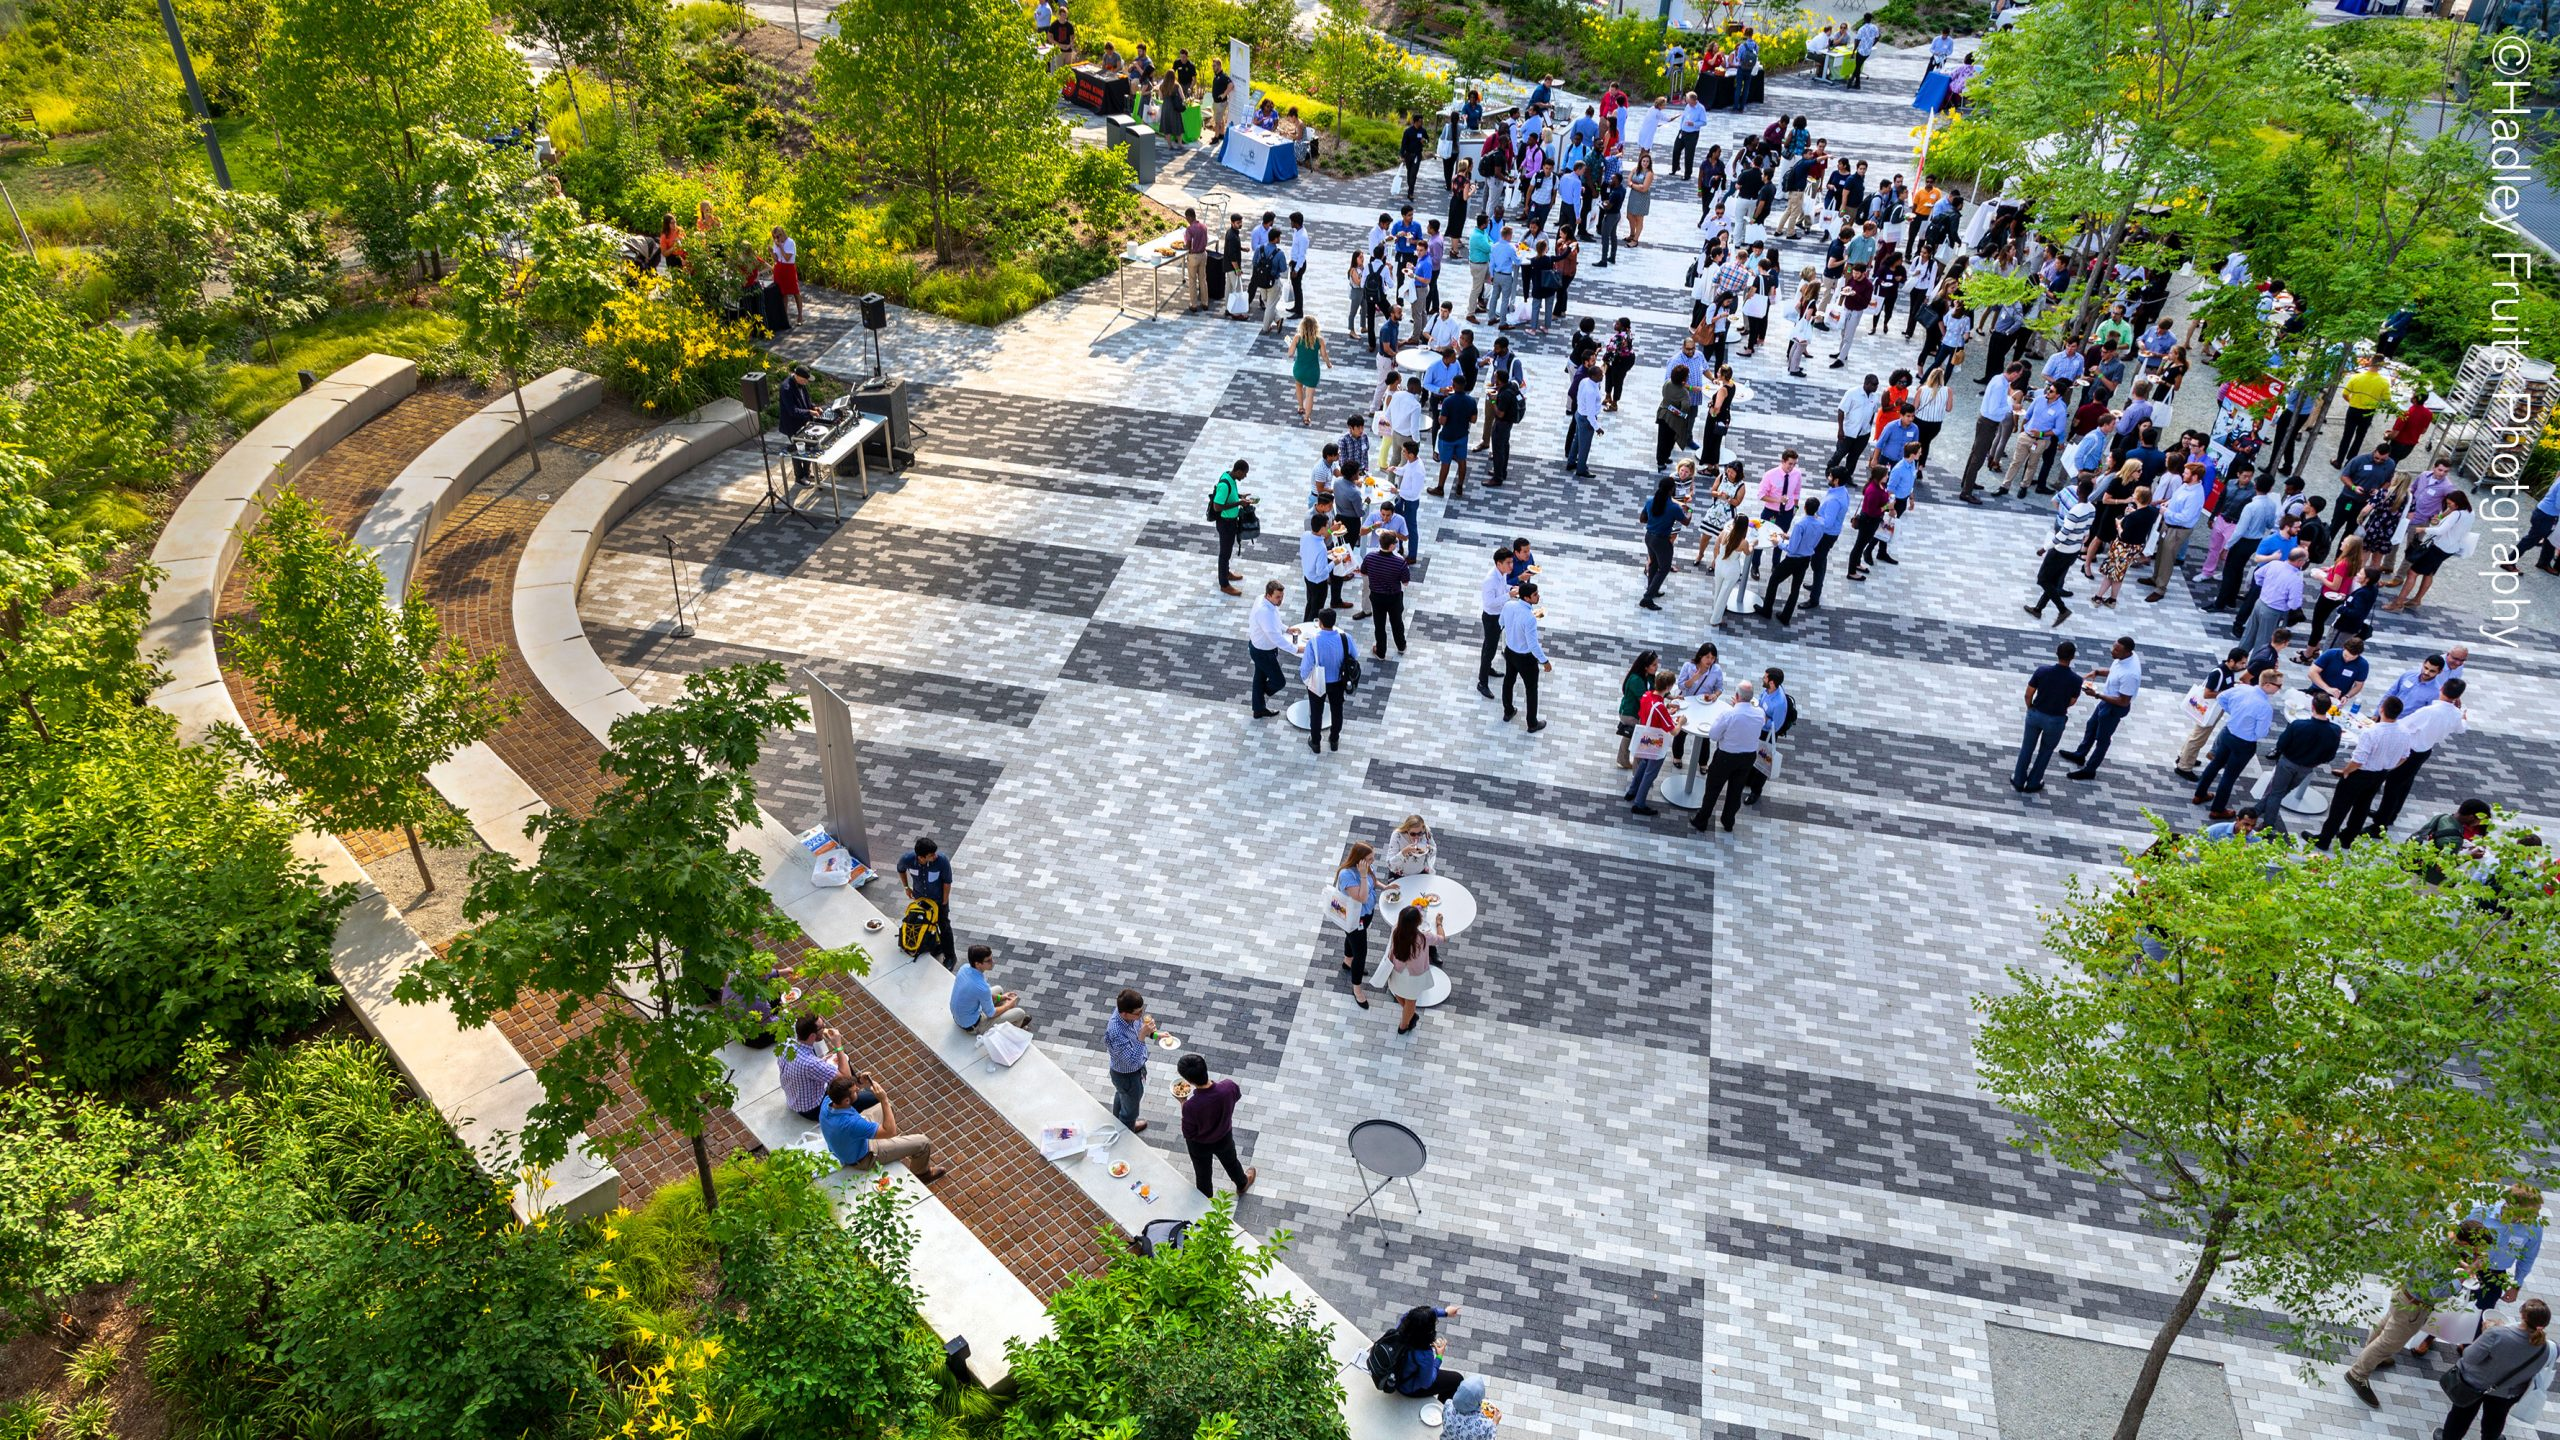 A view of a brick courtyard full of people gathering around standing tables, with trees interspersed throughout the courtyard space and a rich border of terraced cement seating and planted landscapes